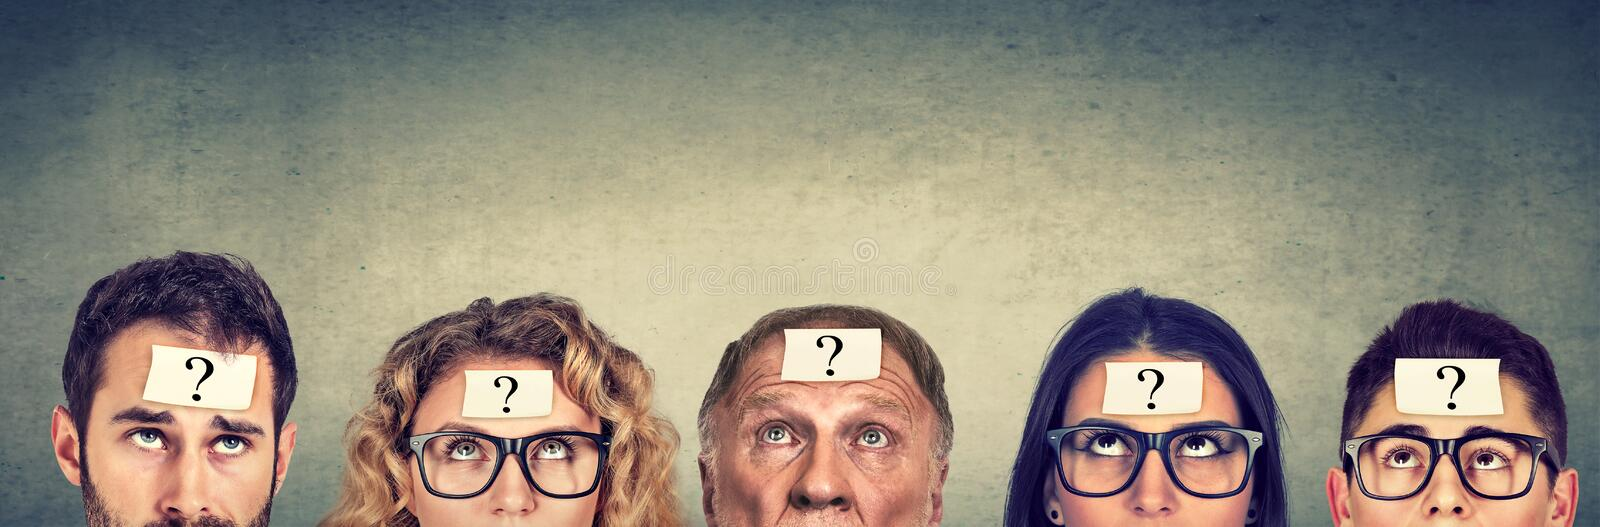 Multiethnic group of thinking people with question mark looking up. Multiethnic group of thinking people men and women with question mark looking up royalty free stock image